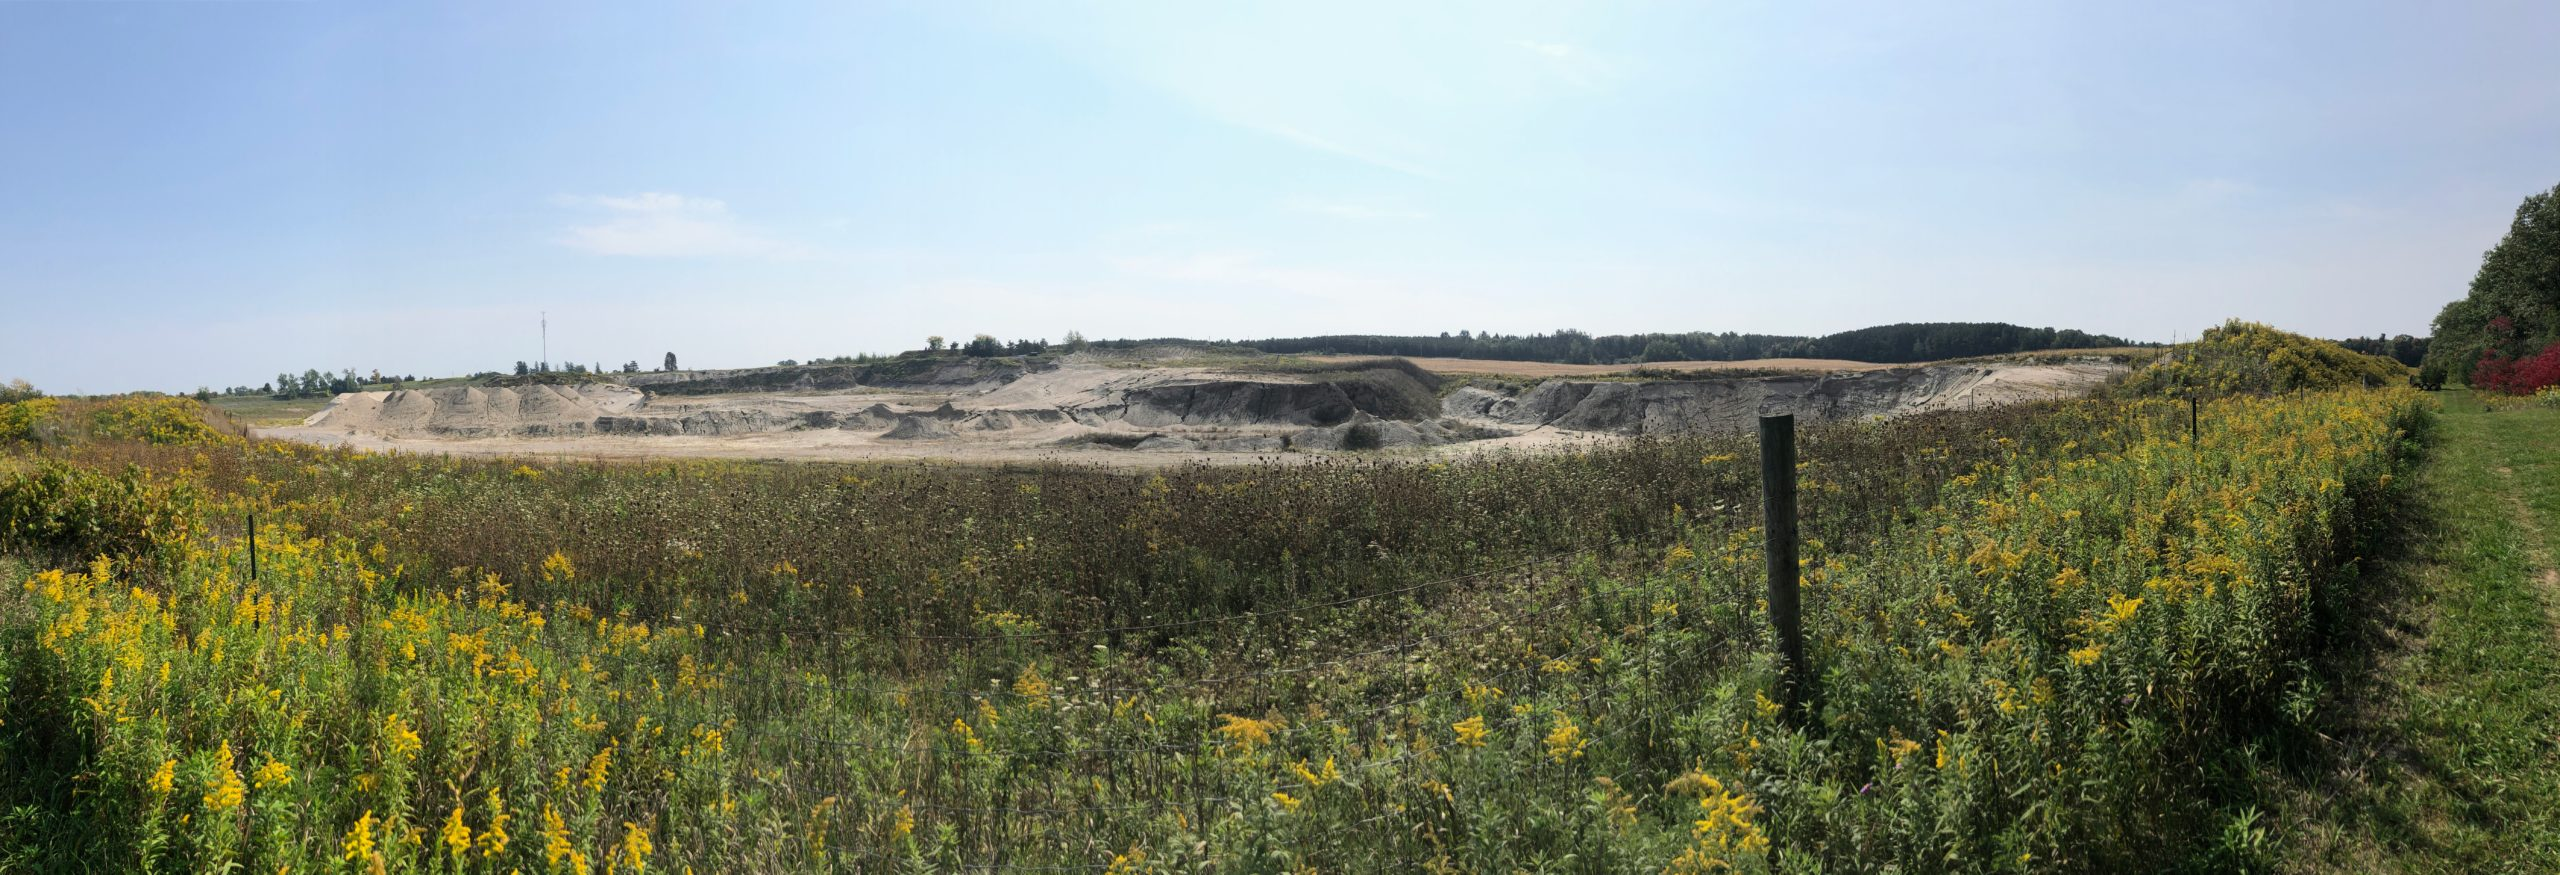 A view of a sand quarry outside Uxbridge, on the way into Durham Forest while riding the Durham Destroyer